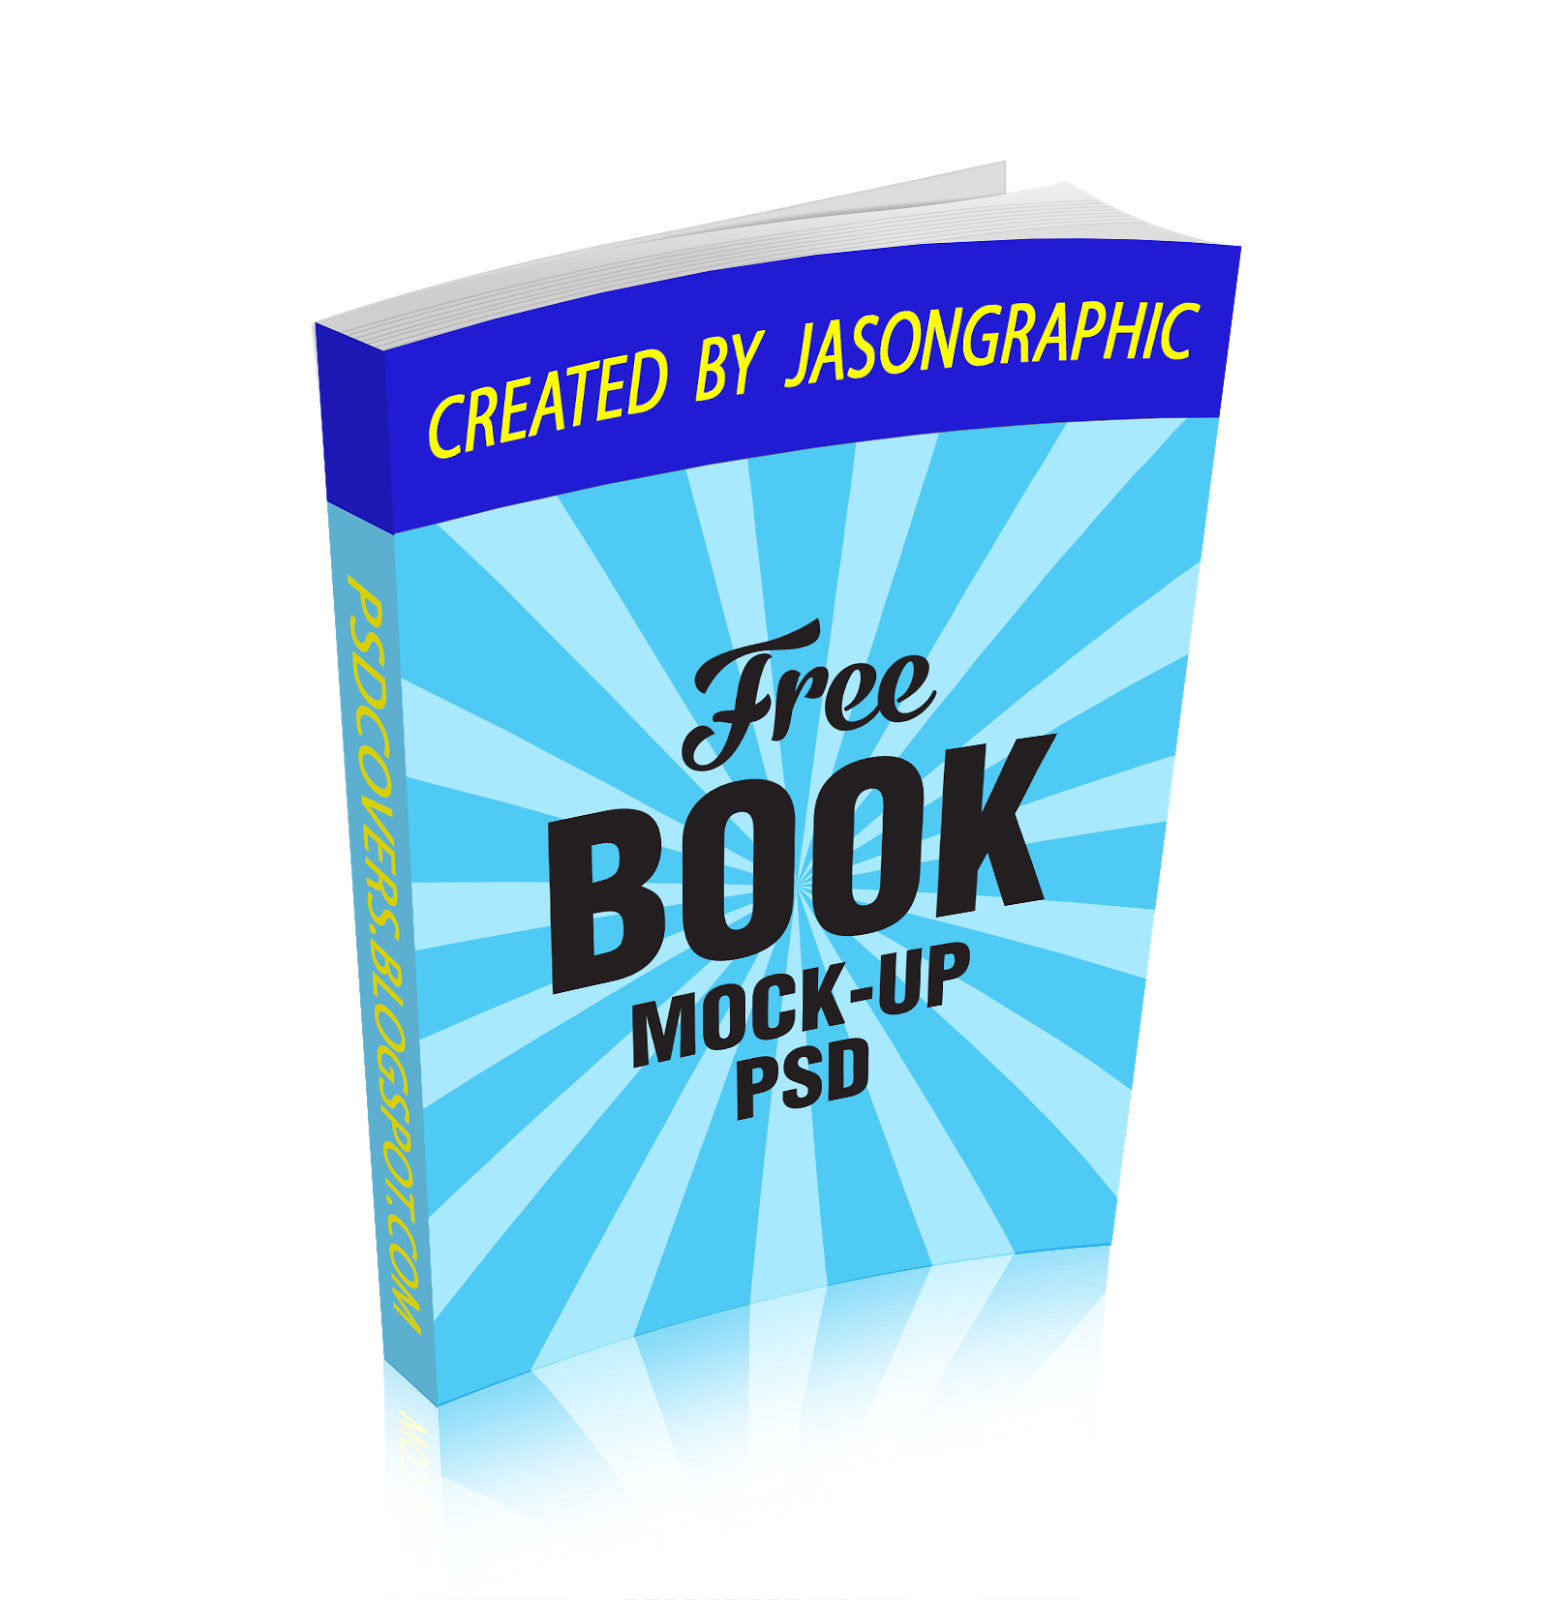 Book Cover Template Png ~ Free psd cover